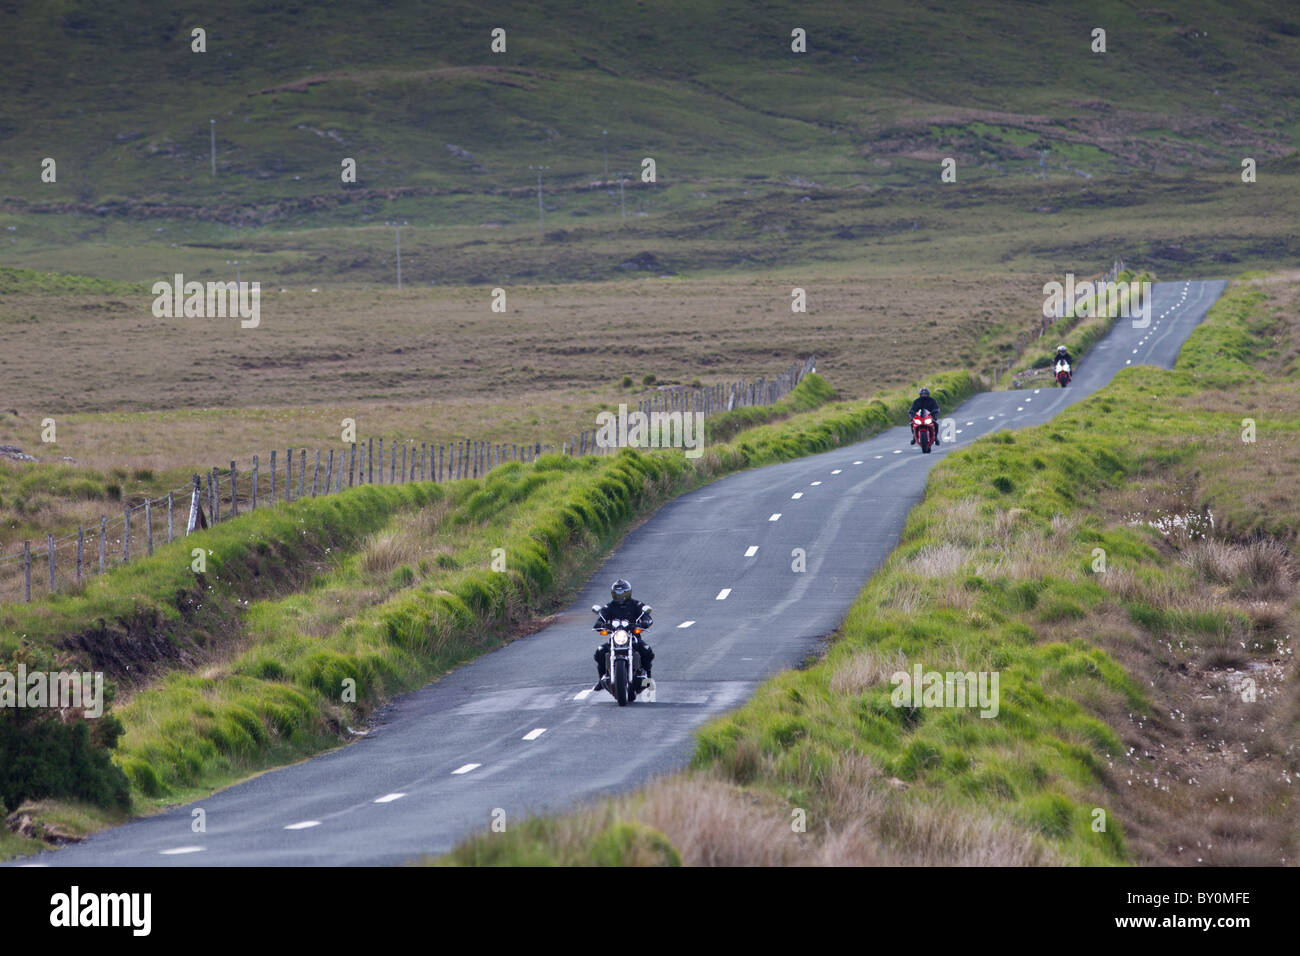 Motorcyclists on Kylemore Pass by the Twelve Bens mountains, Connemara, County Galway, Ireland - Stock Image